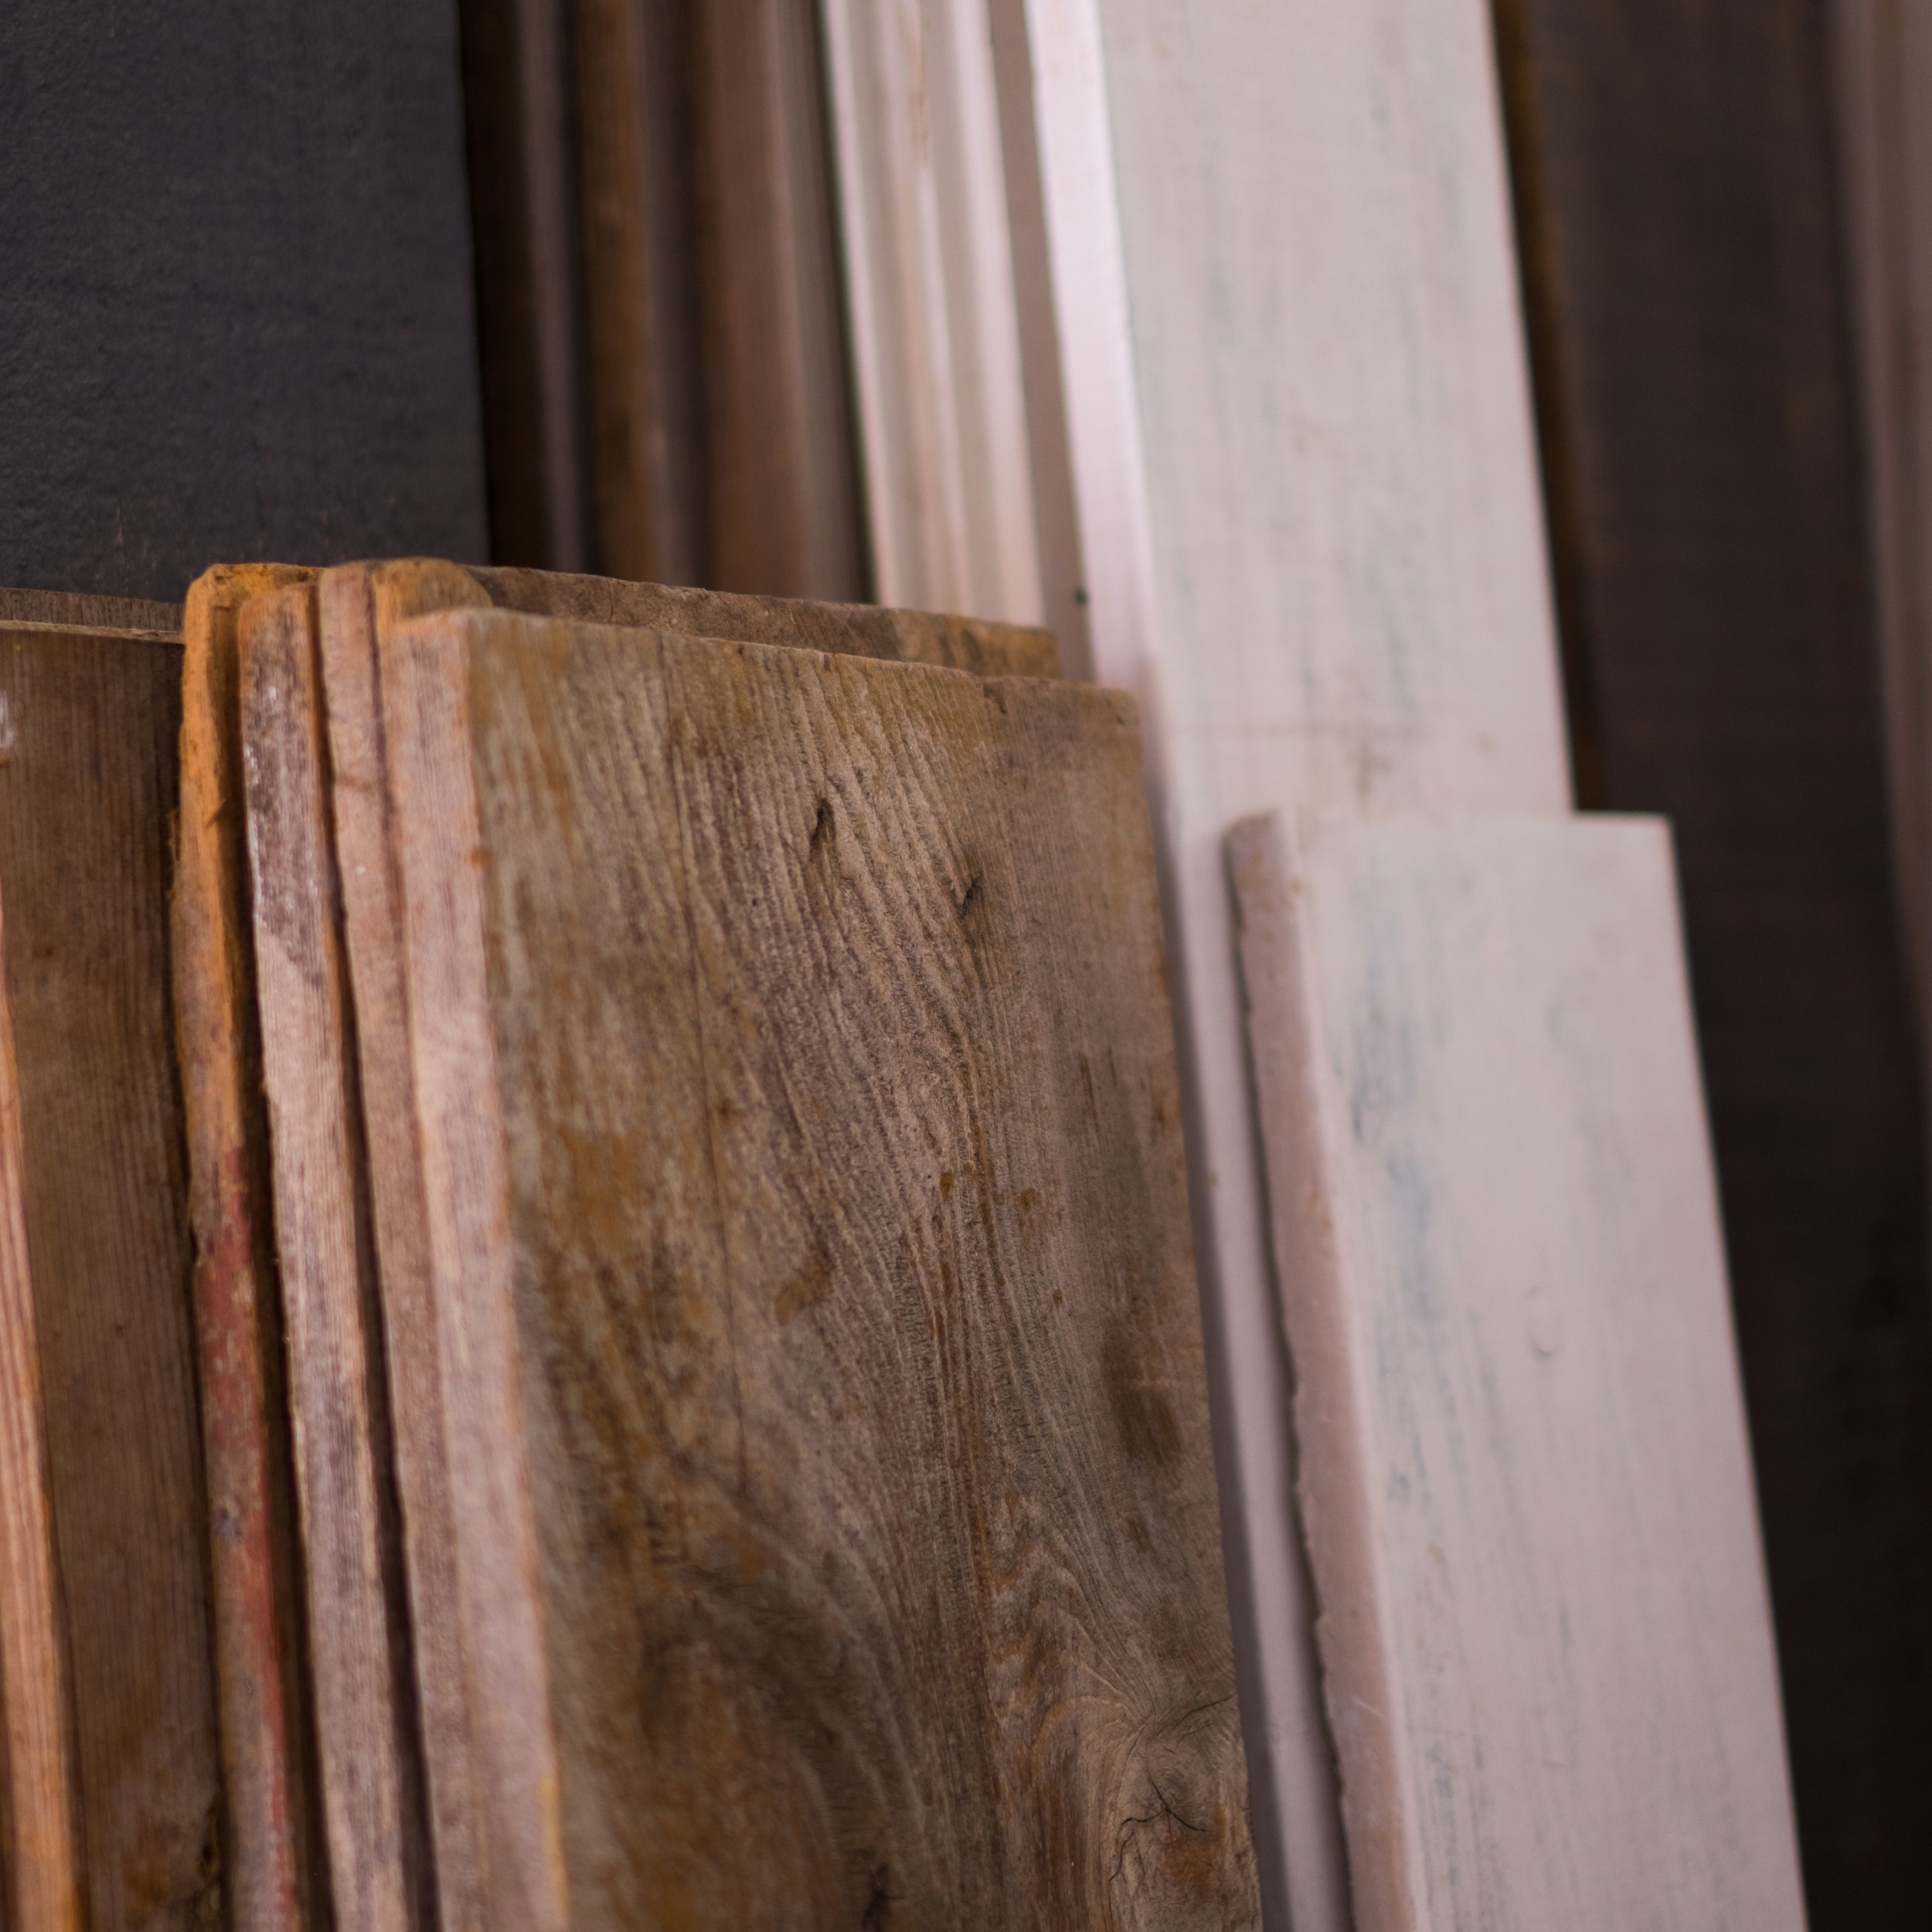 Surfaces - Real objects don't often float in white space, so that's why we have surfaces and backgrounds. Our surfaces vary in color, texture and material, with a wide selection of things like wood, concrete, metal, tile, etc.